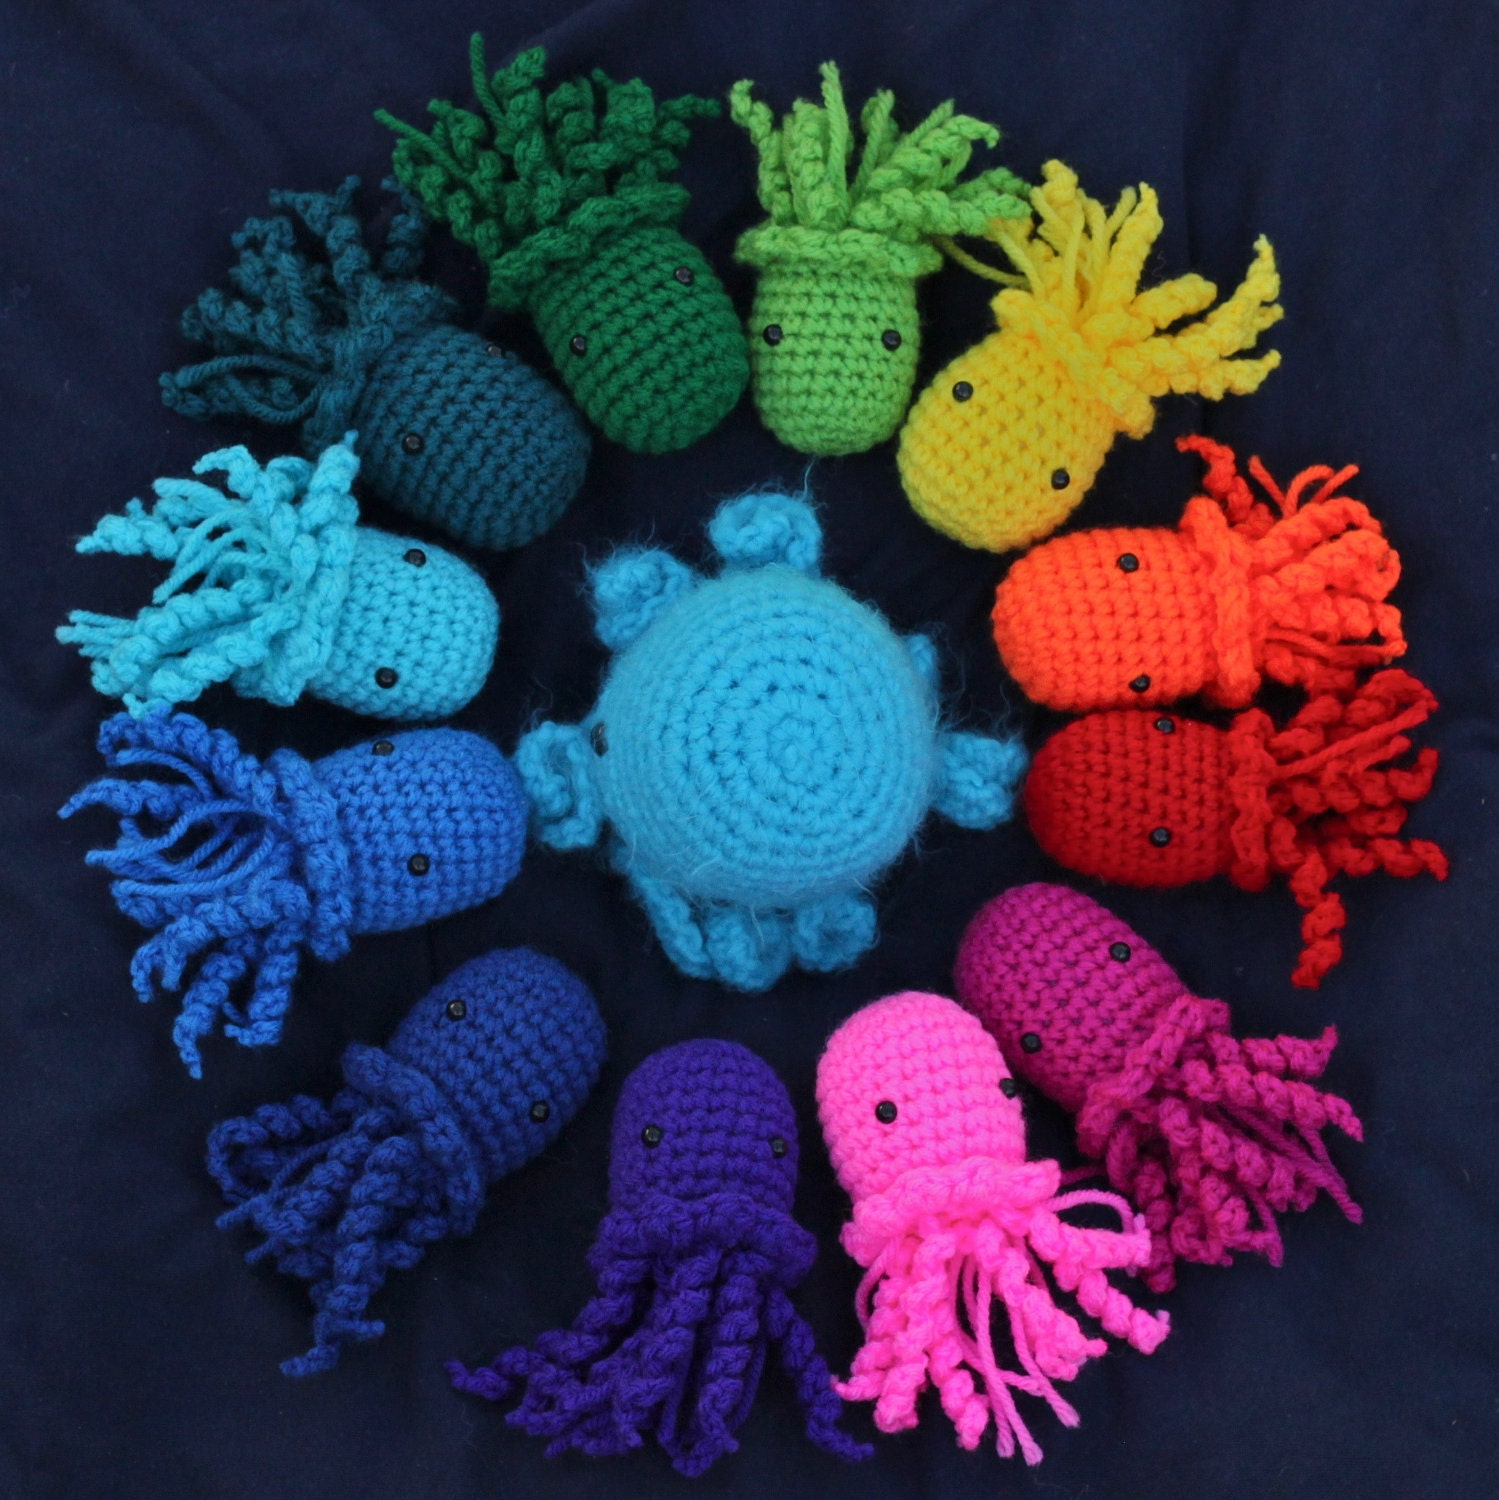 Crocheting Stuff : Items similar to Two Jellyfish Amigurumi Crochet Stuffed Animals ...